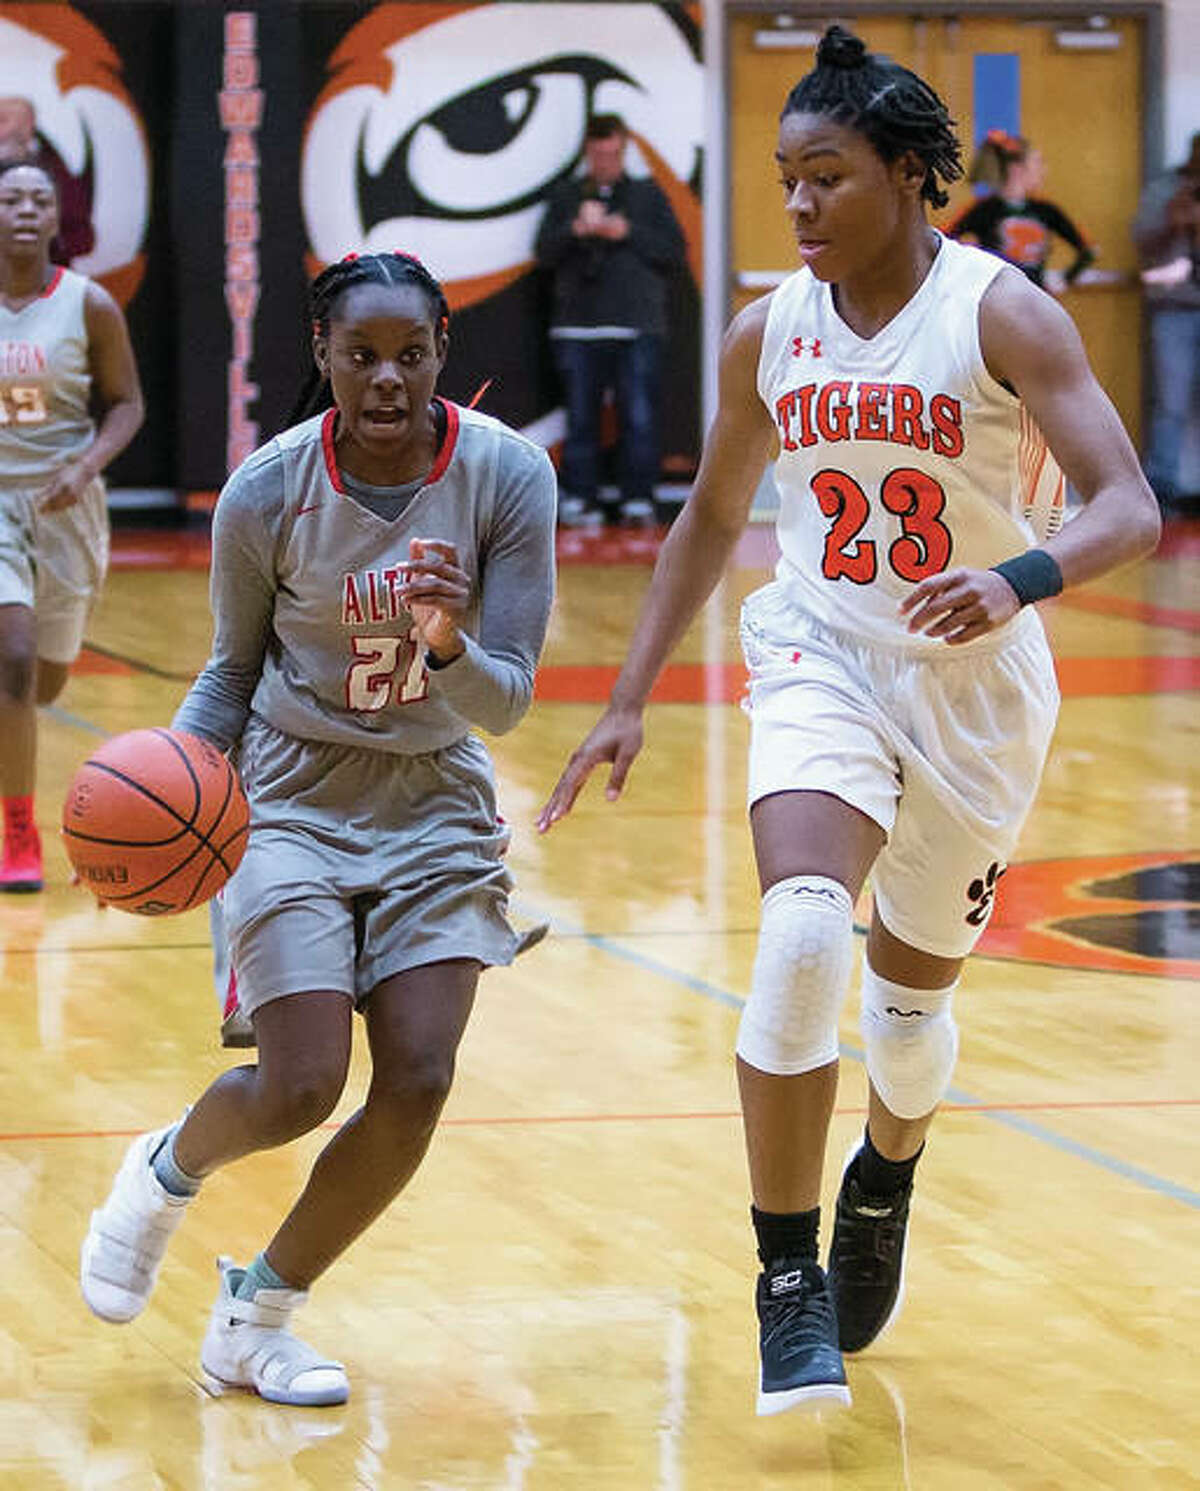 Alton's Laila McNeal (left) pushes the ball upcourt while being defended by Edwardsville's Myriah Noodel-Haywood during a SWC girls basketball game Friday night in Edwardsville.